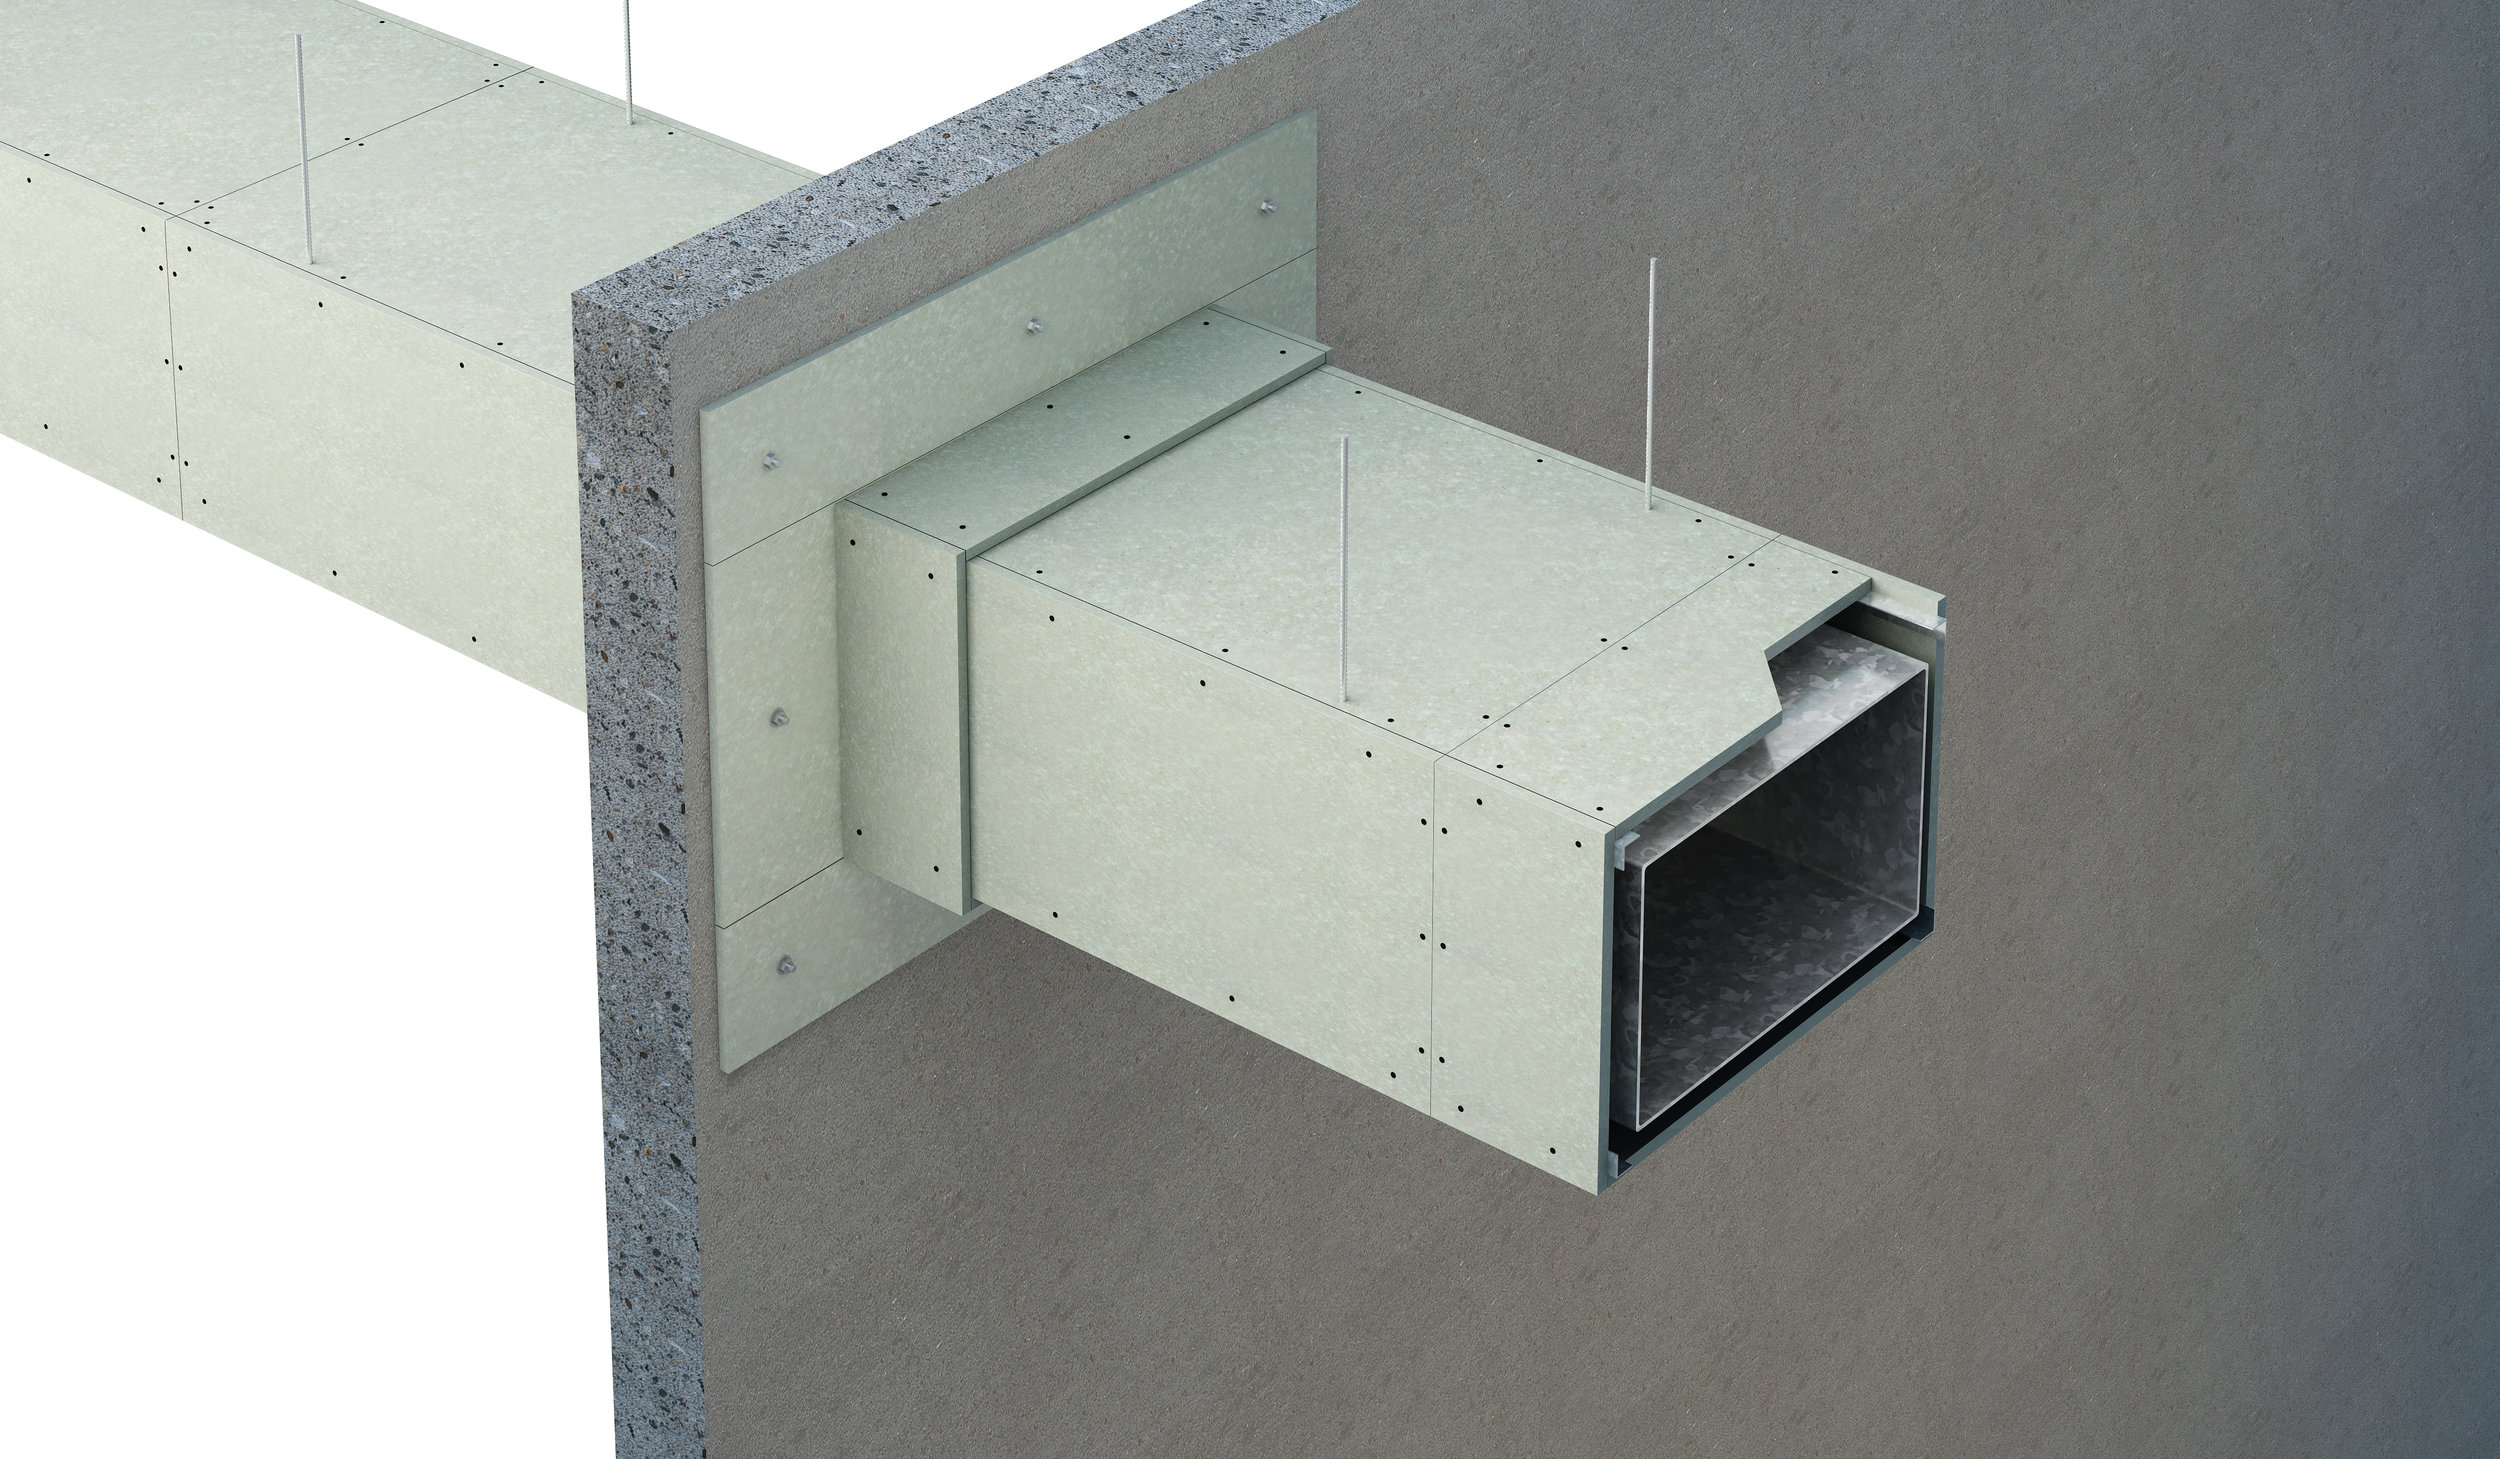 Ventilation & Smoke ducts (protection to steel duct DW144)